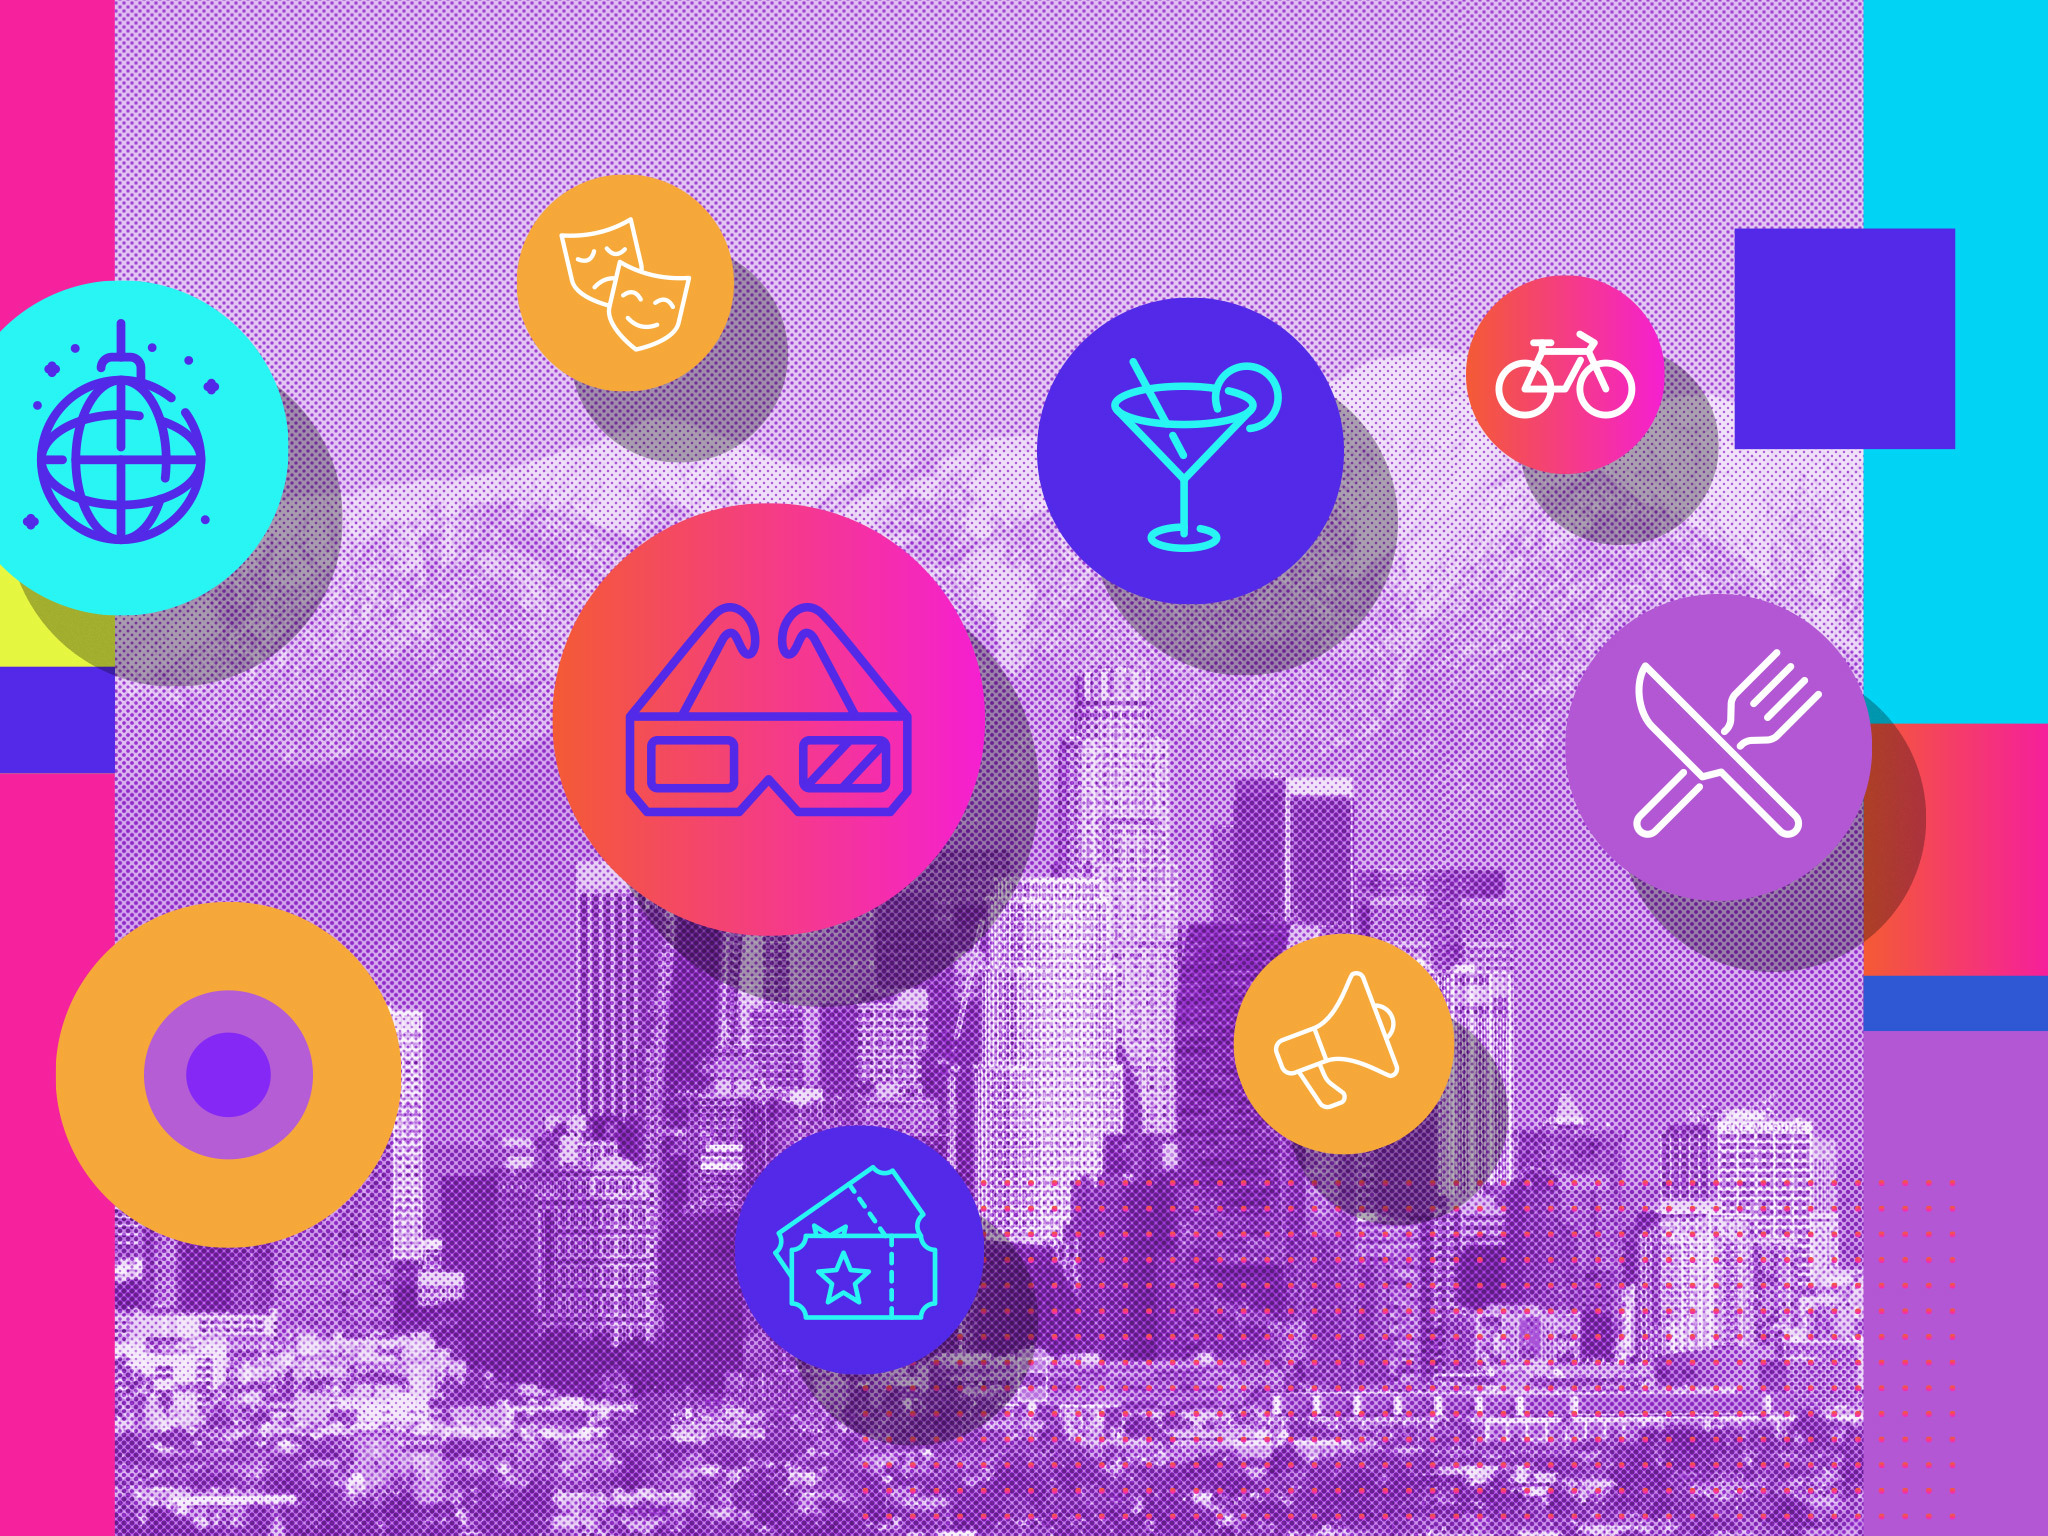 Future Los Angeles, now! The 20 people, places and things shaping a better city today